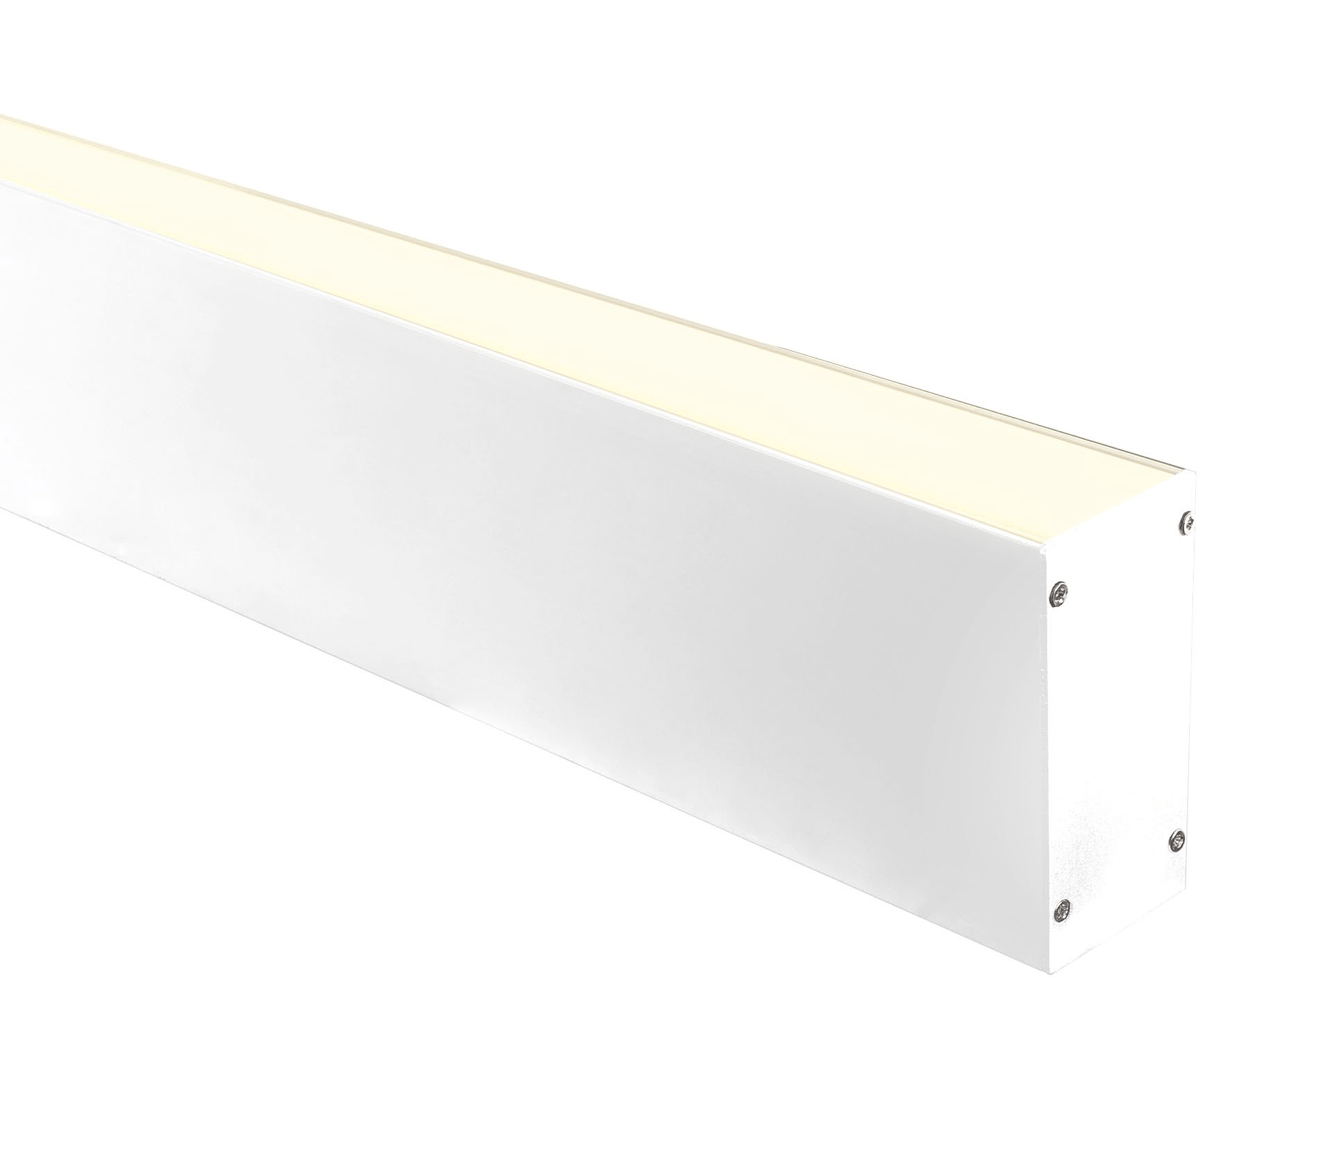 Profiles Suspended Profile - Square - HV9693-3890